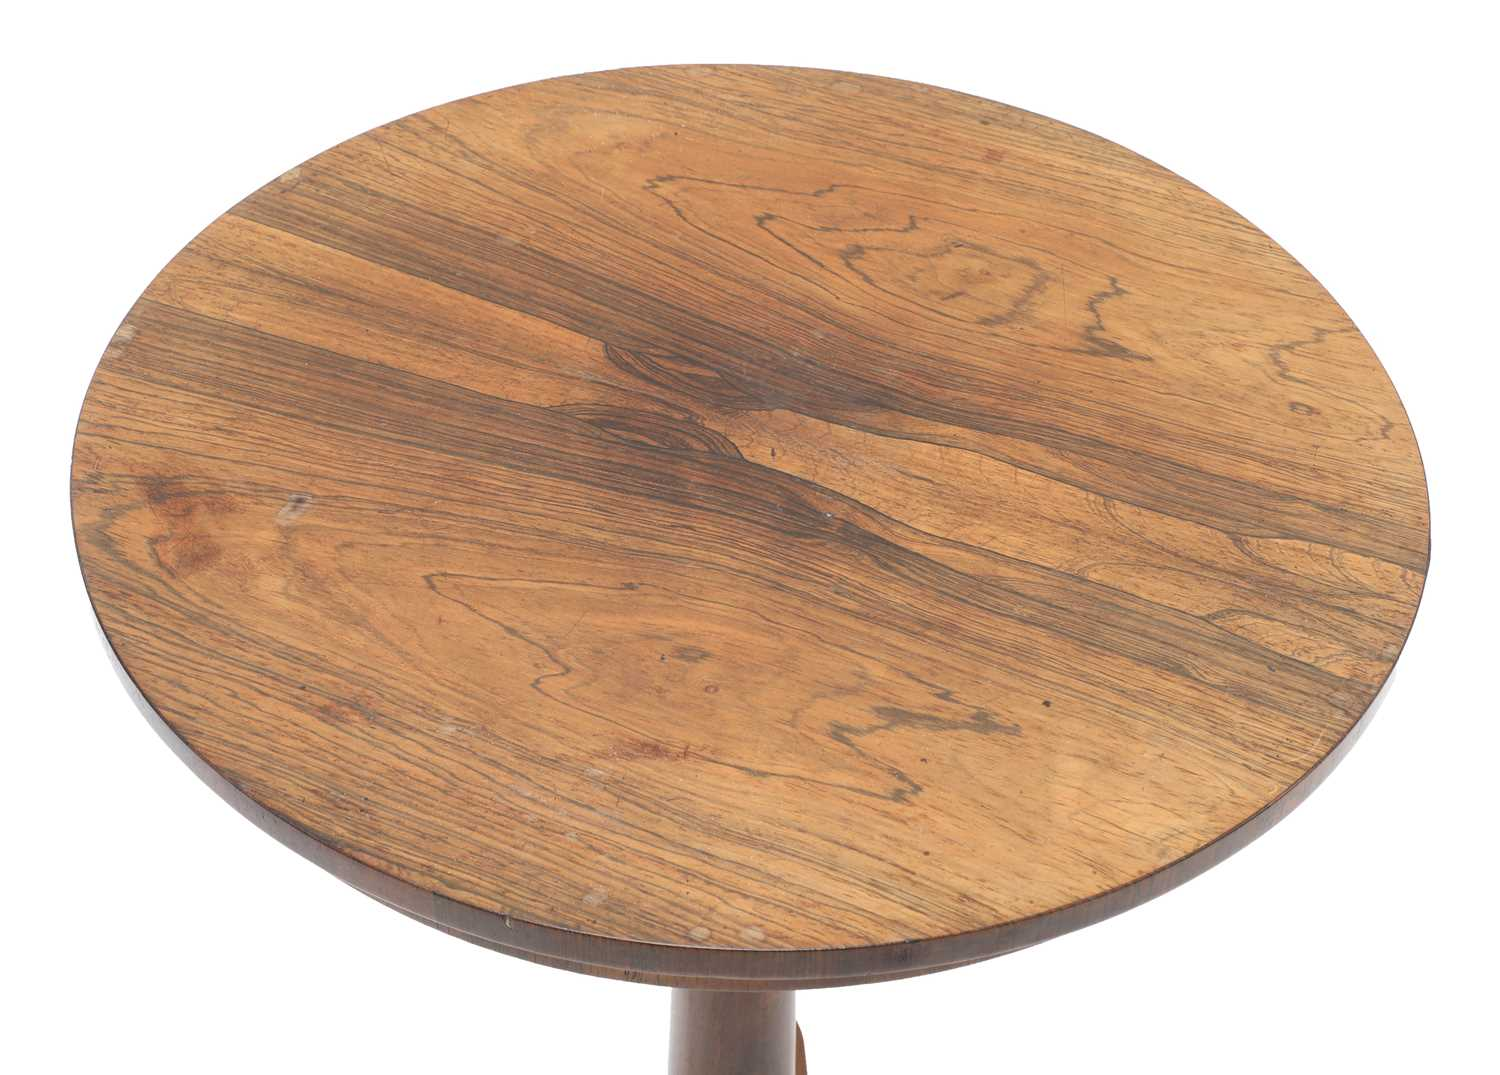 A William IV rosewood occasional table, - Image 2 of 3